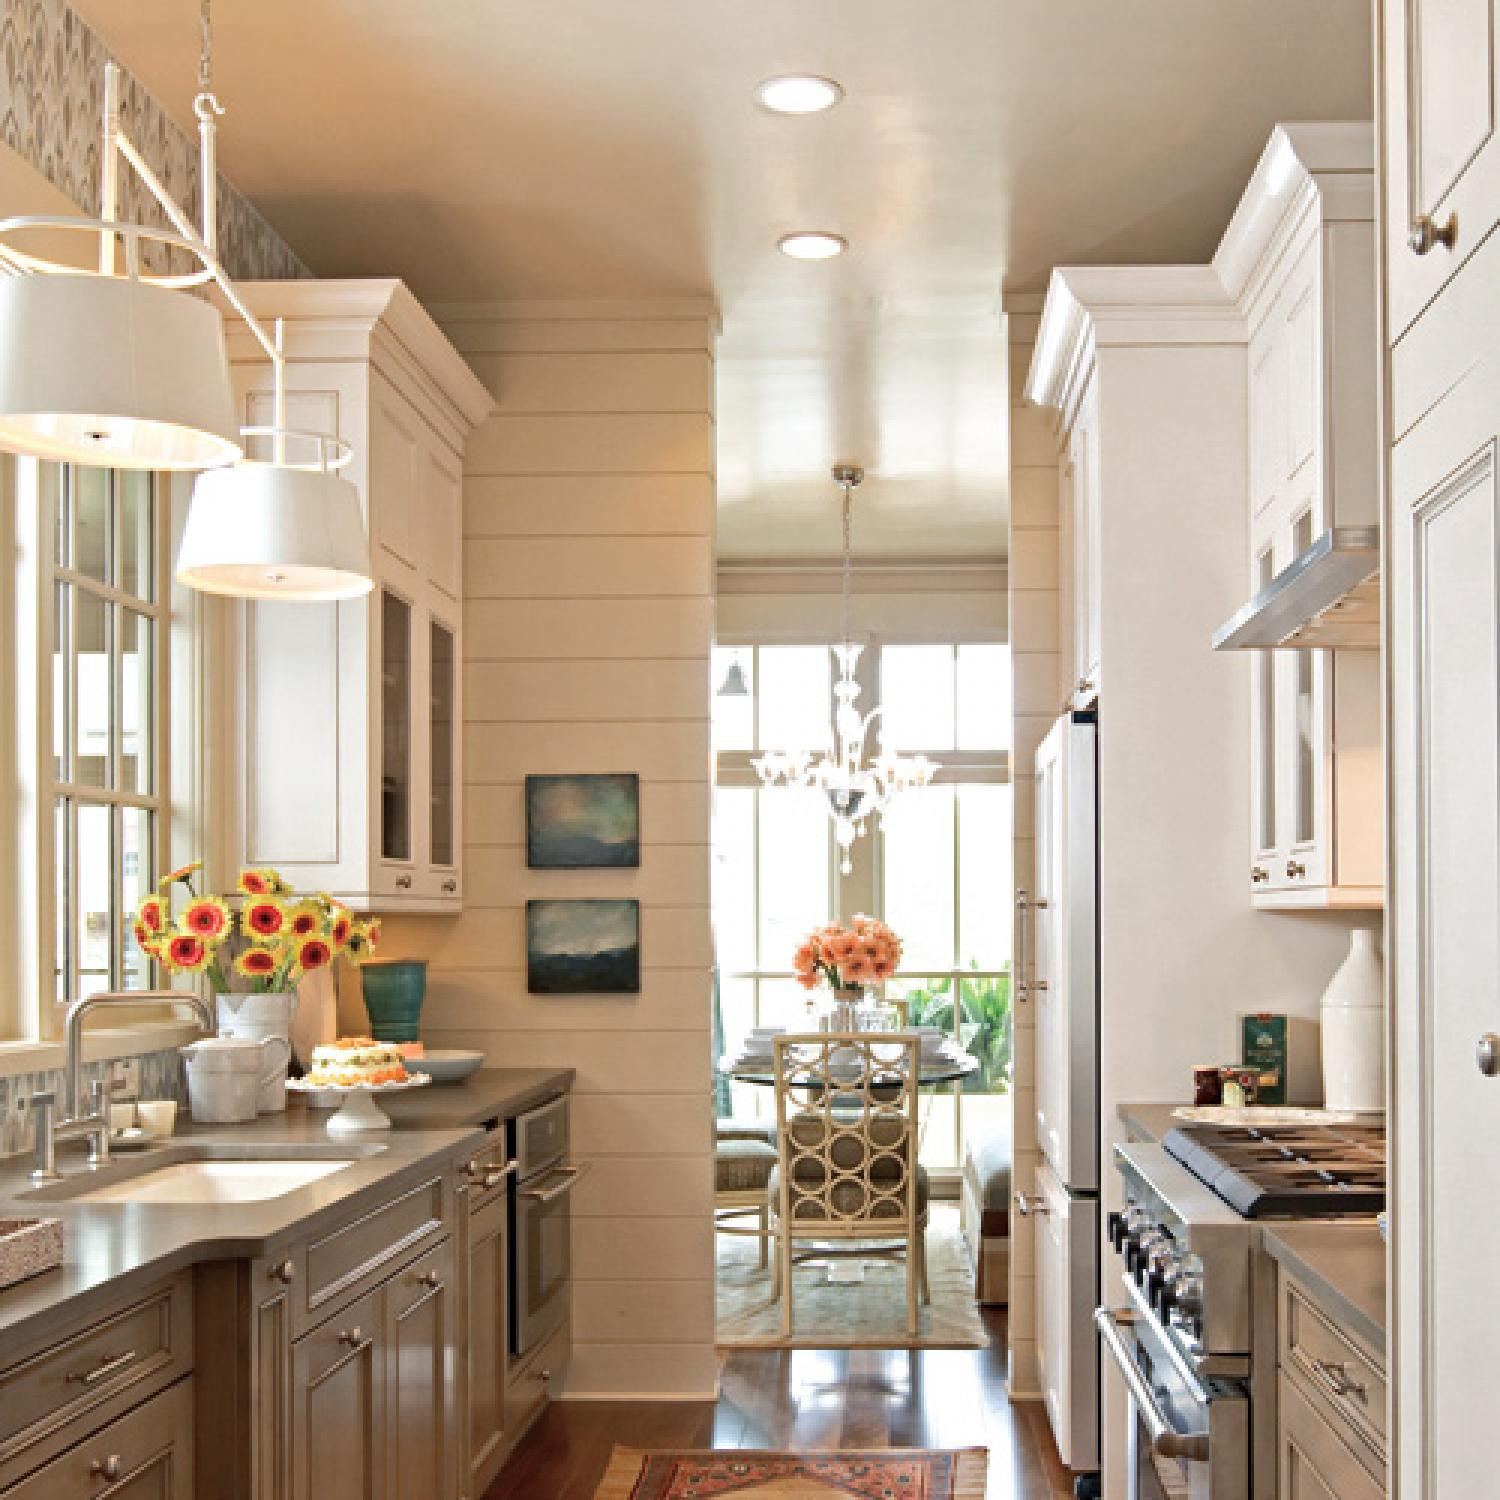 Home Kitchen Designs living room list of things design